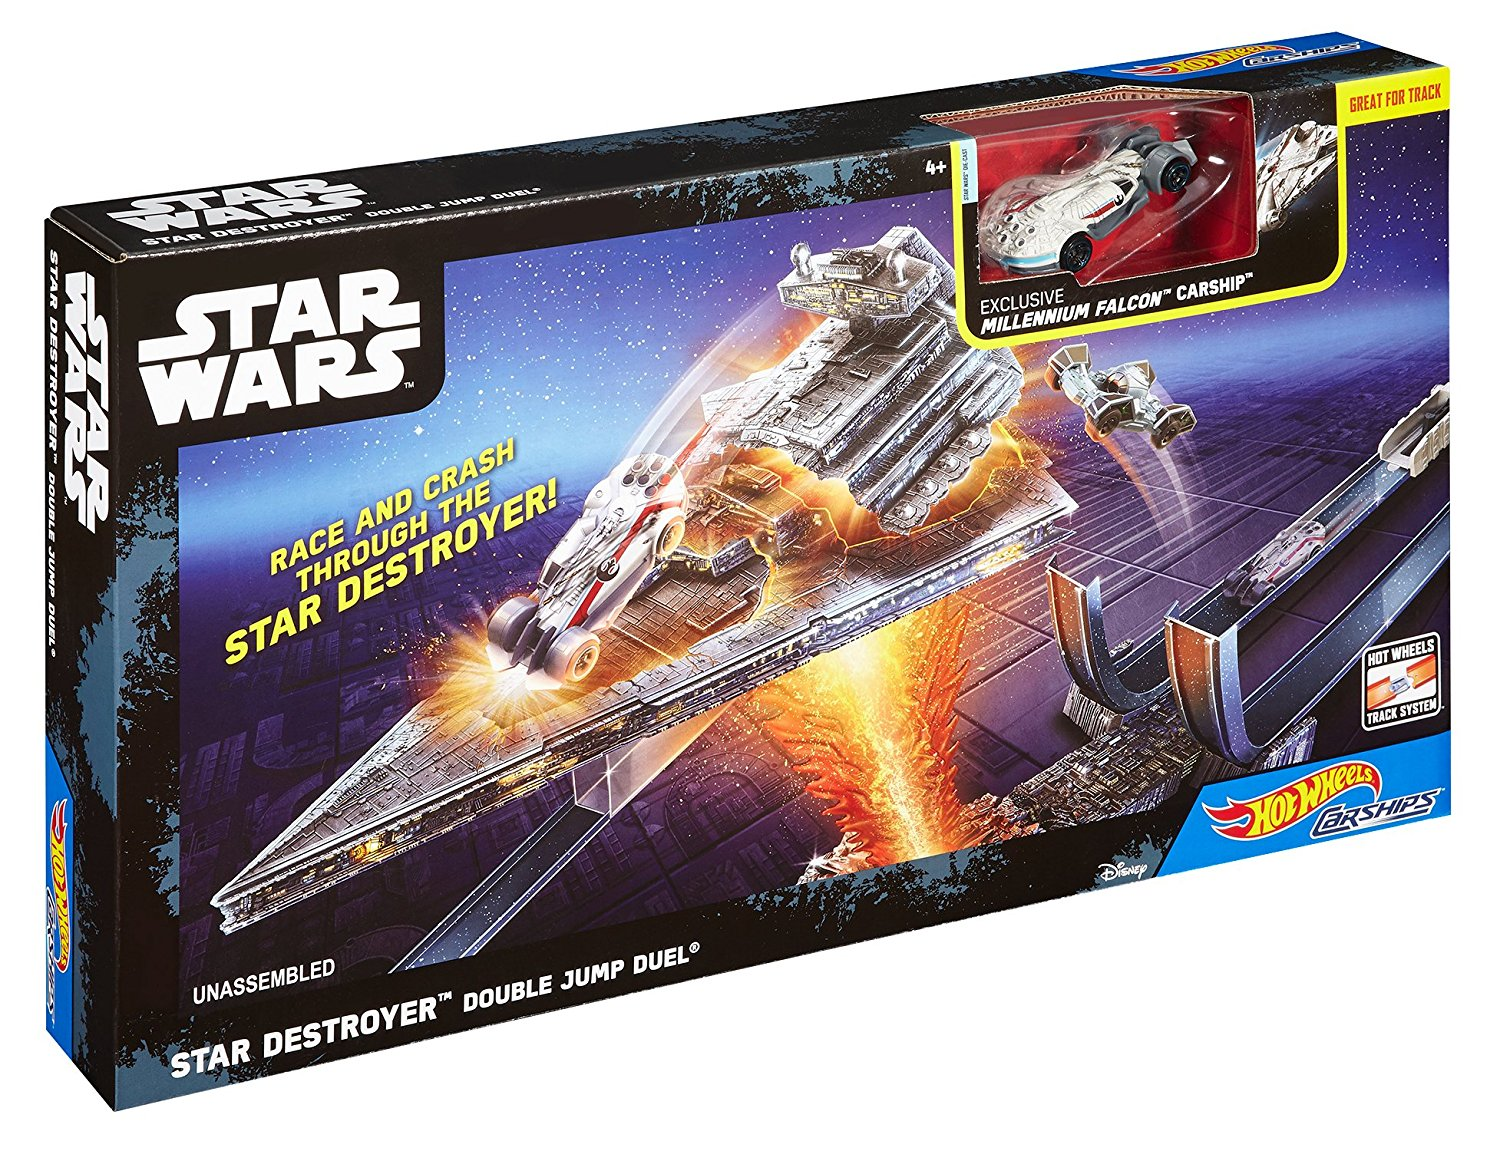 Hot Wheels Star Wars Rogue One Star Destroyer Double Jump Duel Carships Trackset